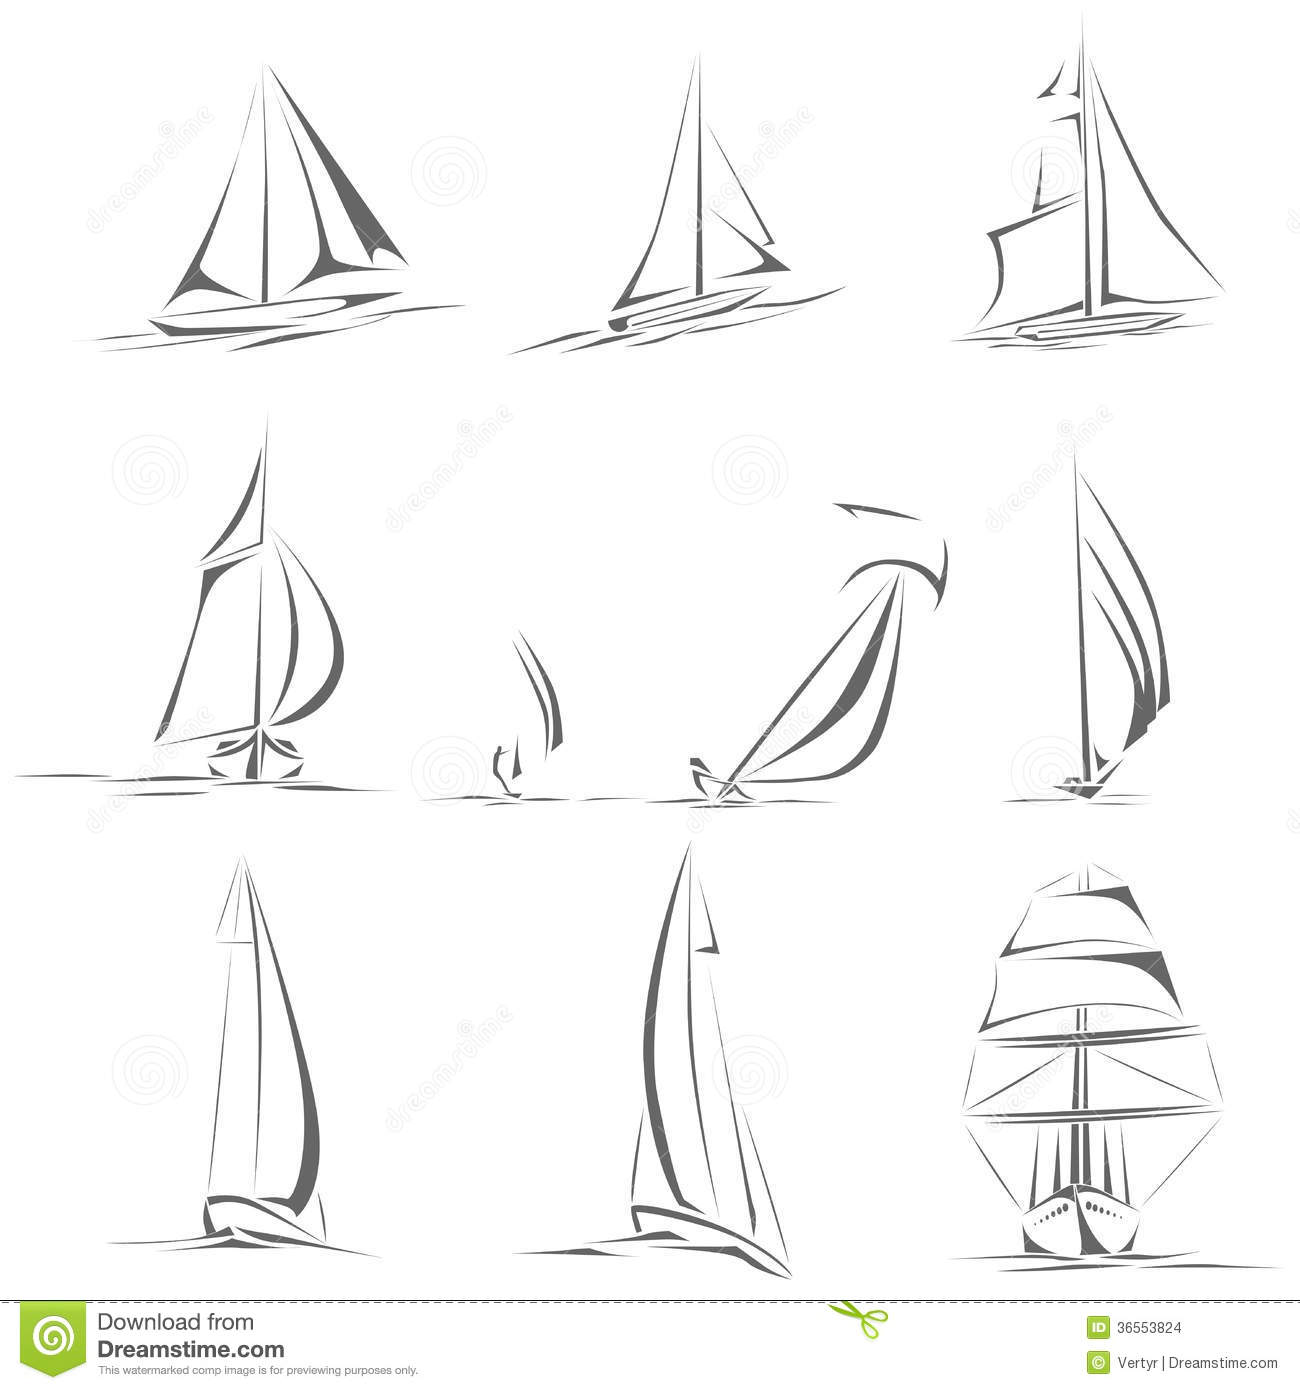 ... clipart displaying 16 gallery images for simple sailboat clipart